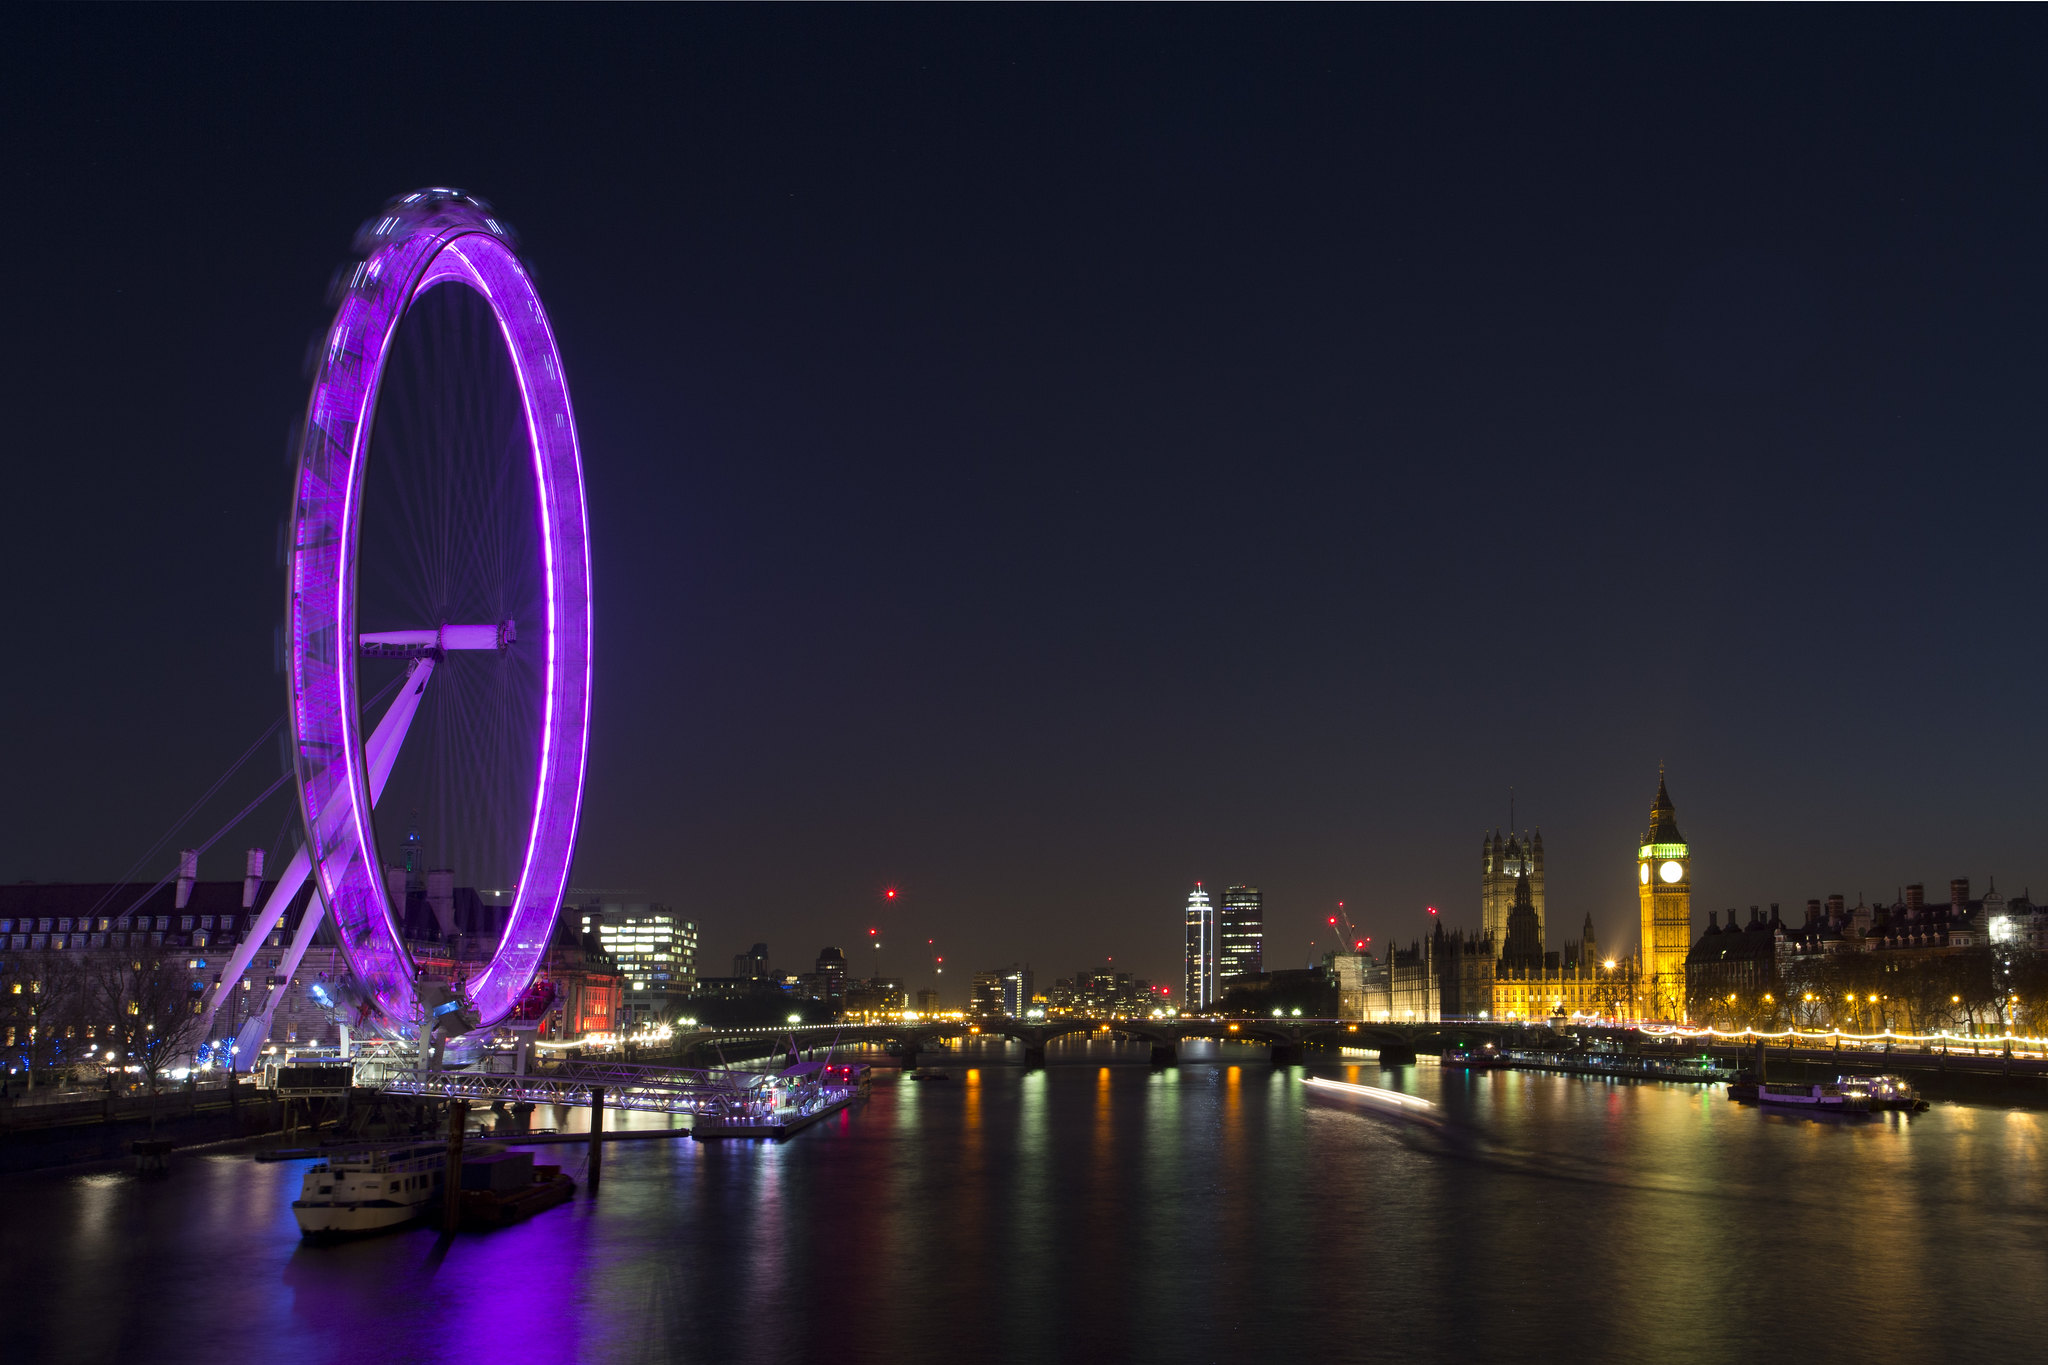 The London Eye and Houses of Parliament